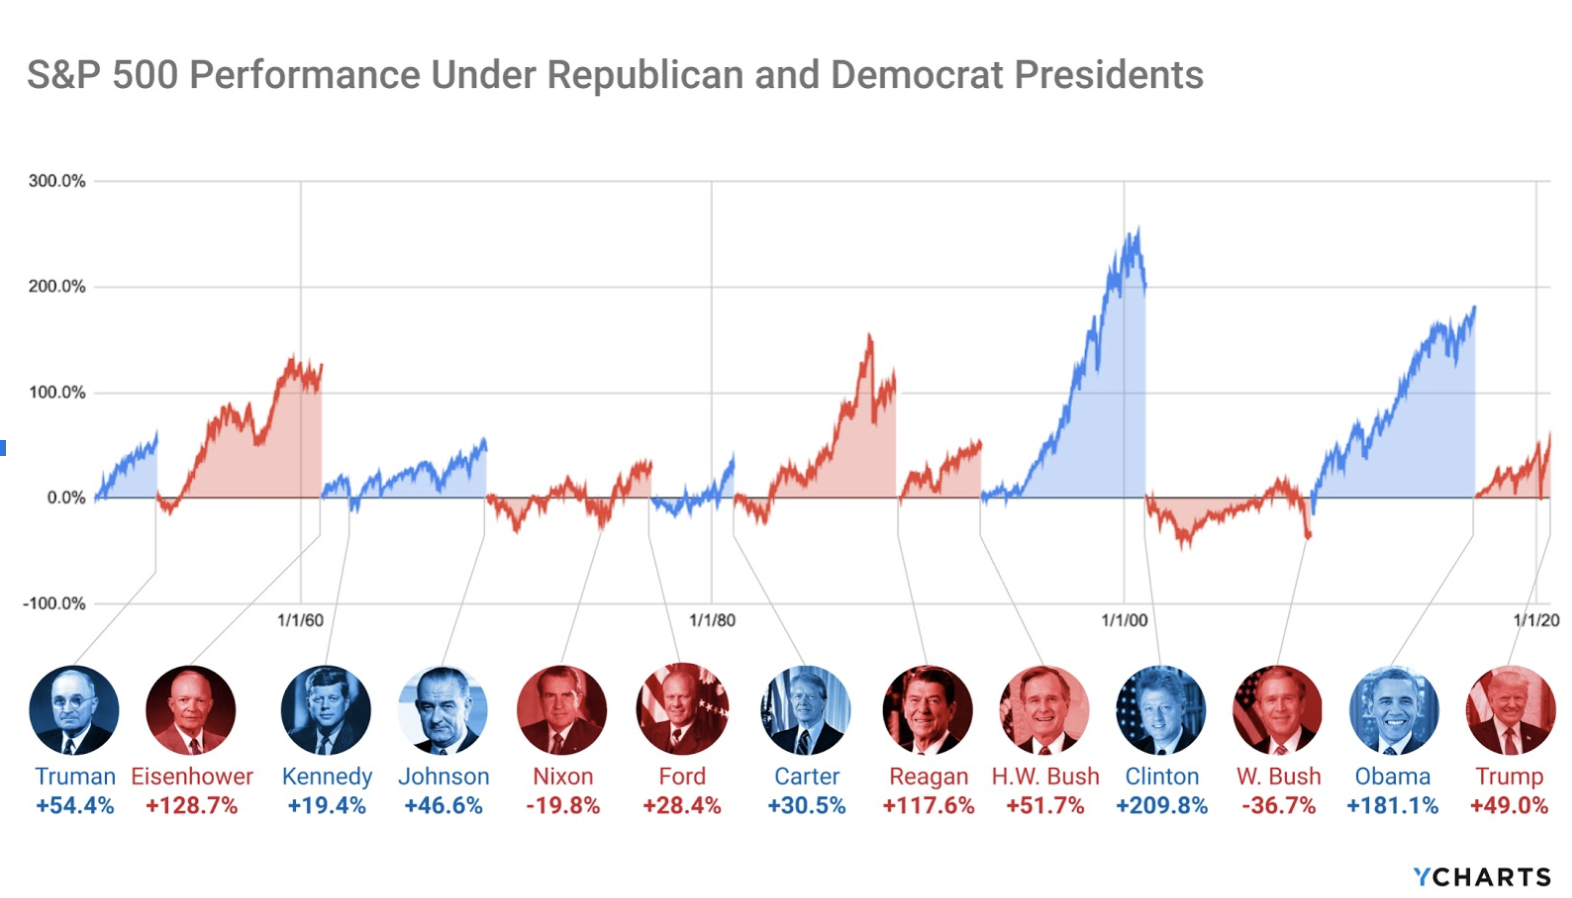 S and P 500 Performance Under Republican and Democrat Presidents